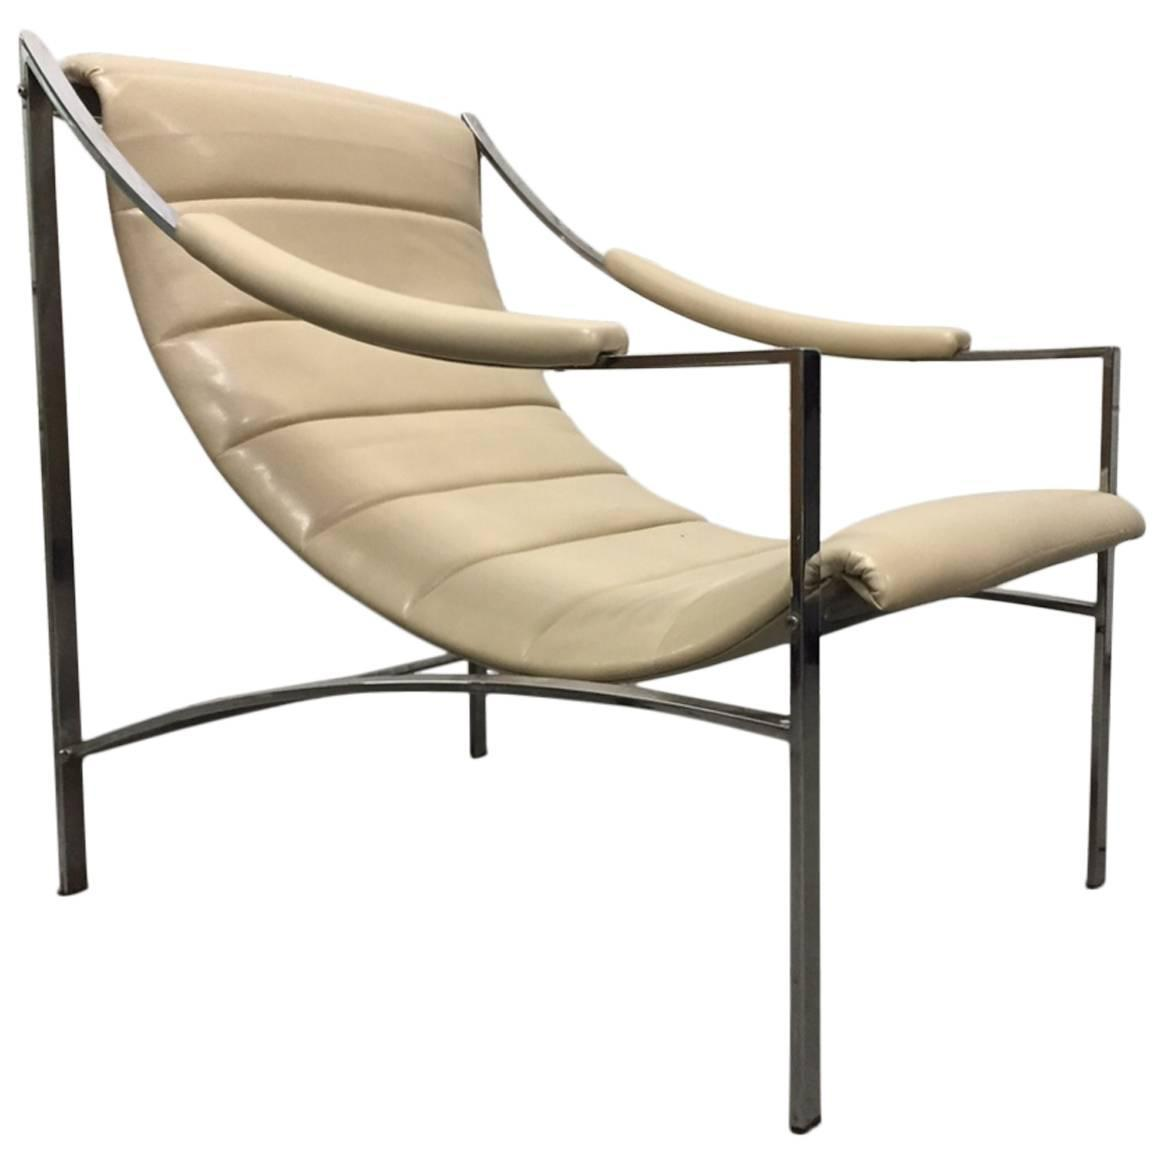 Mid Century Modern Leather And Chrome Lounge Chair For Sale At 1stdibs